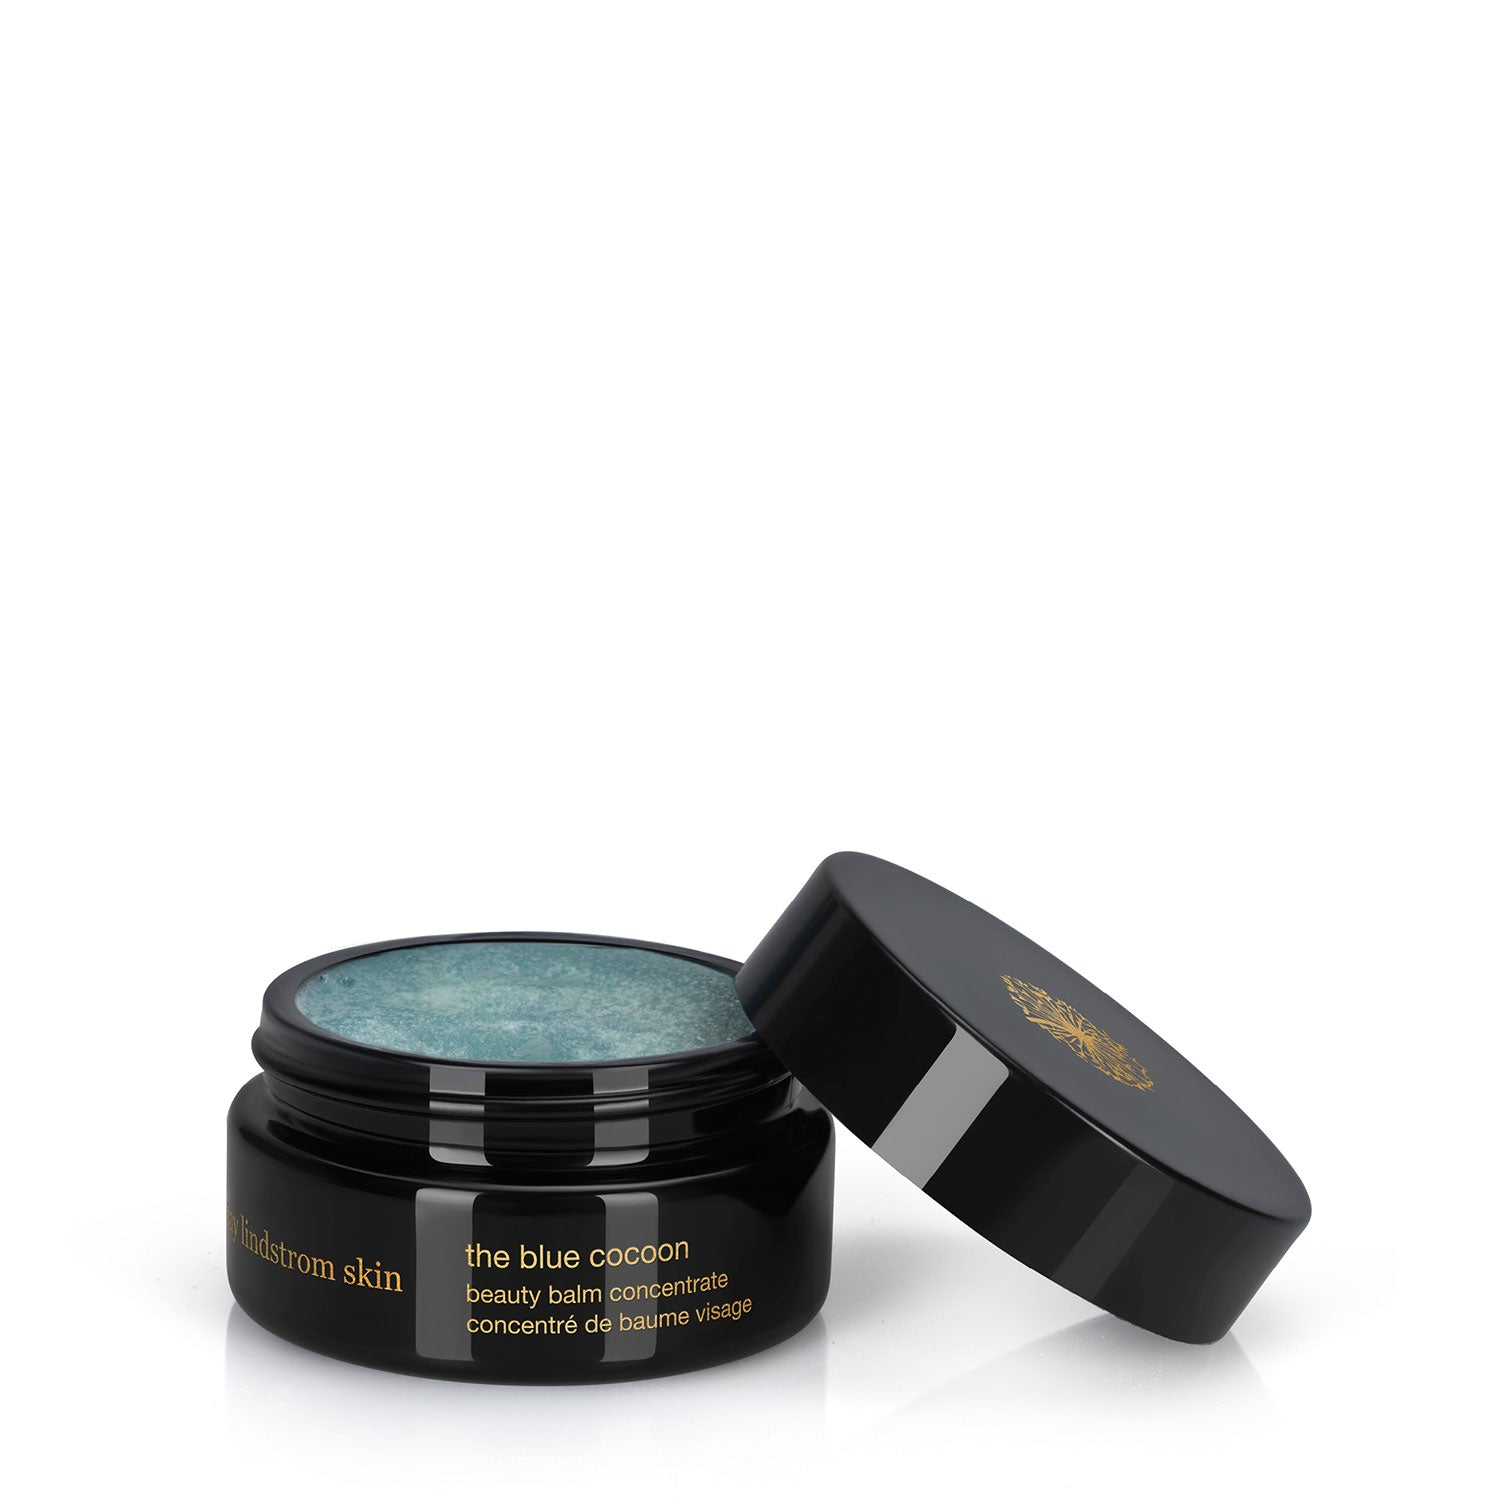 the blue cocoon: beauty balm concentrate